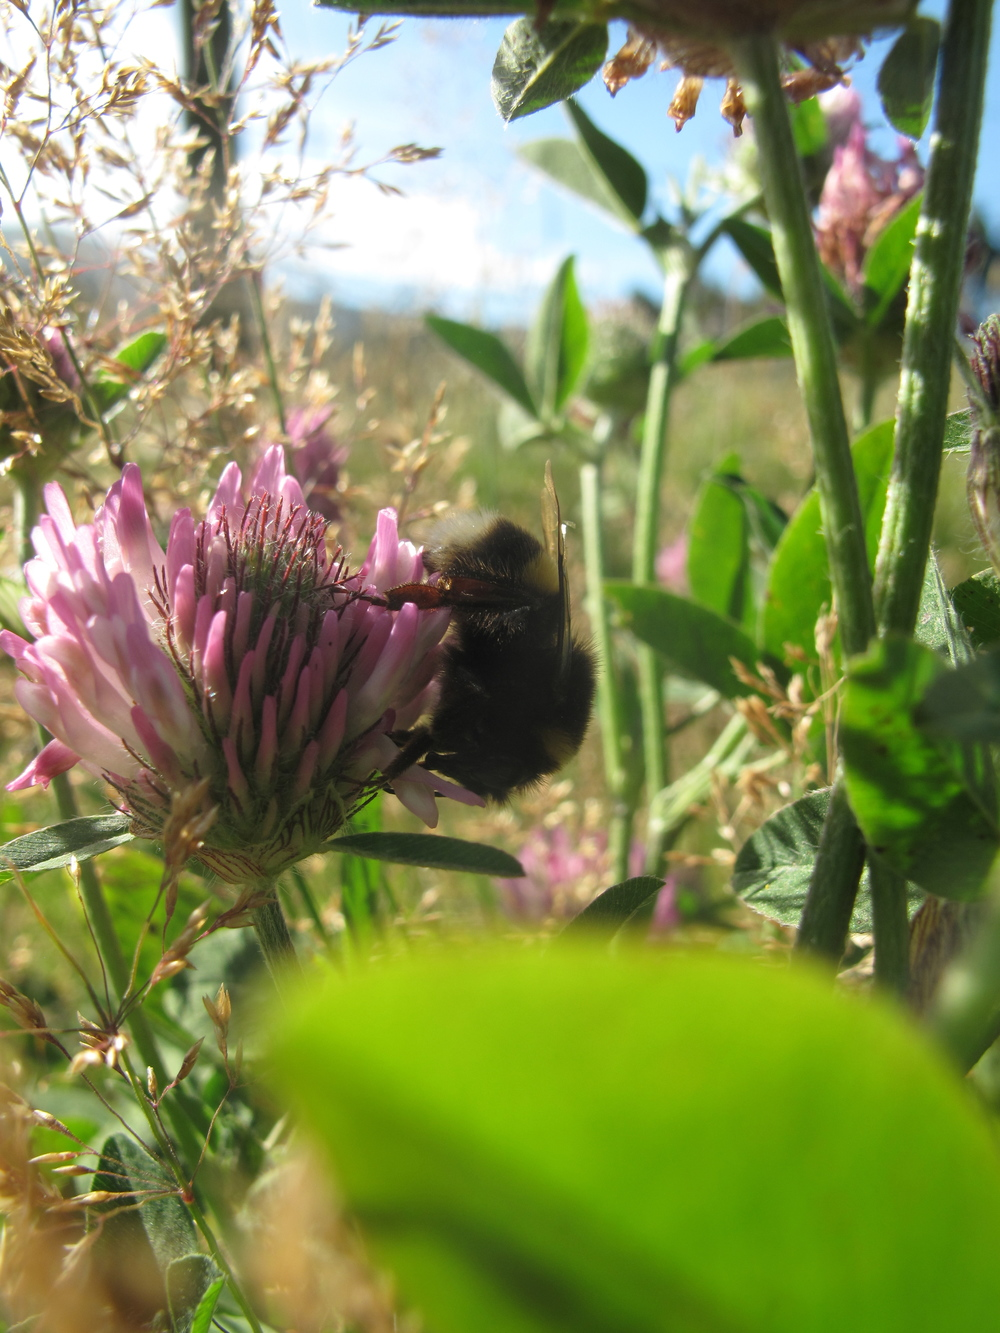 bumblebee in long grasses and clover